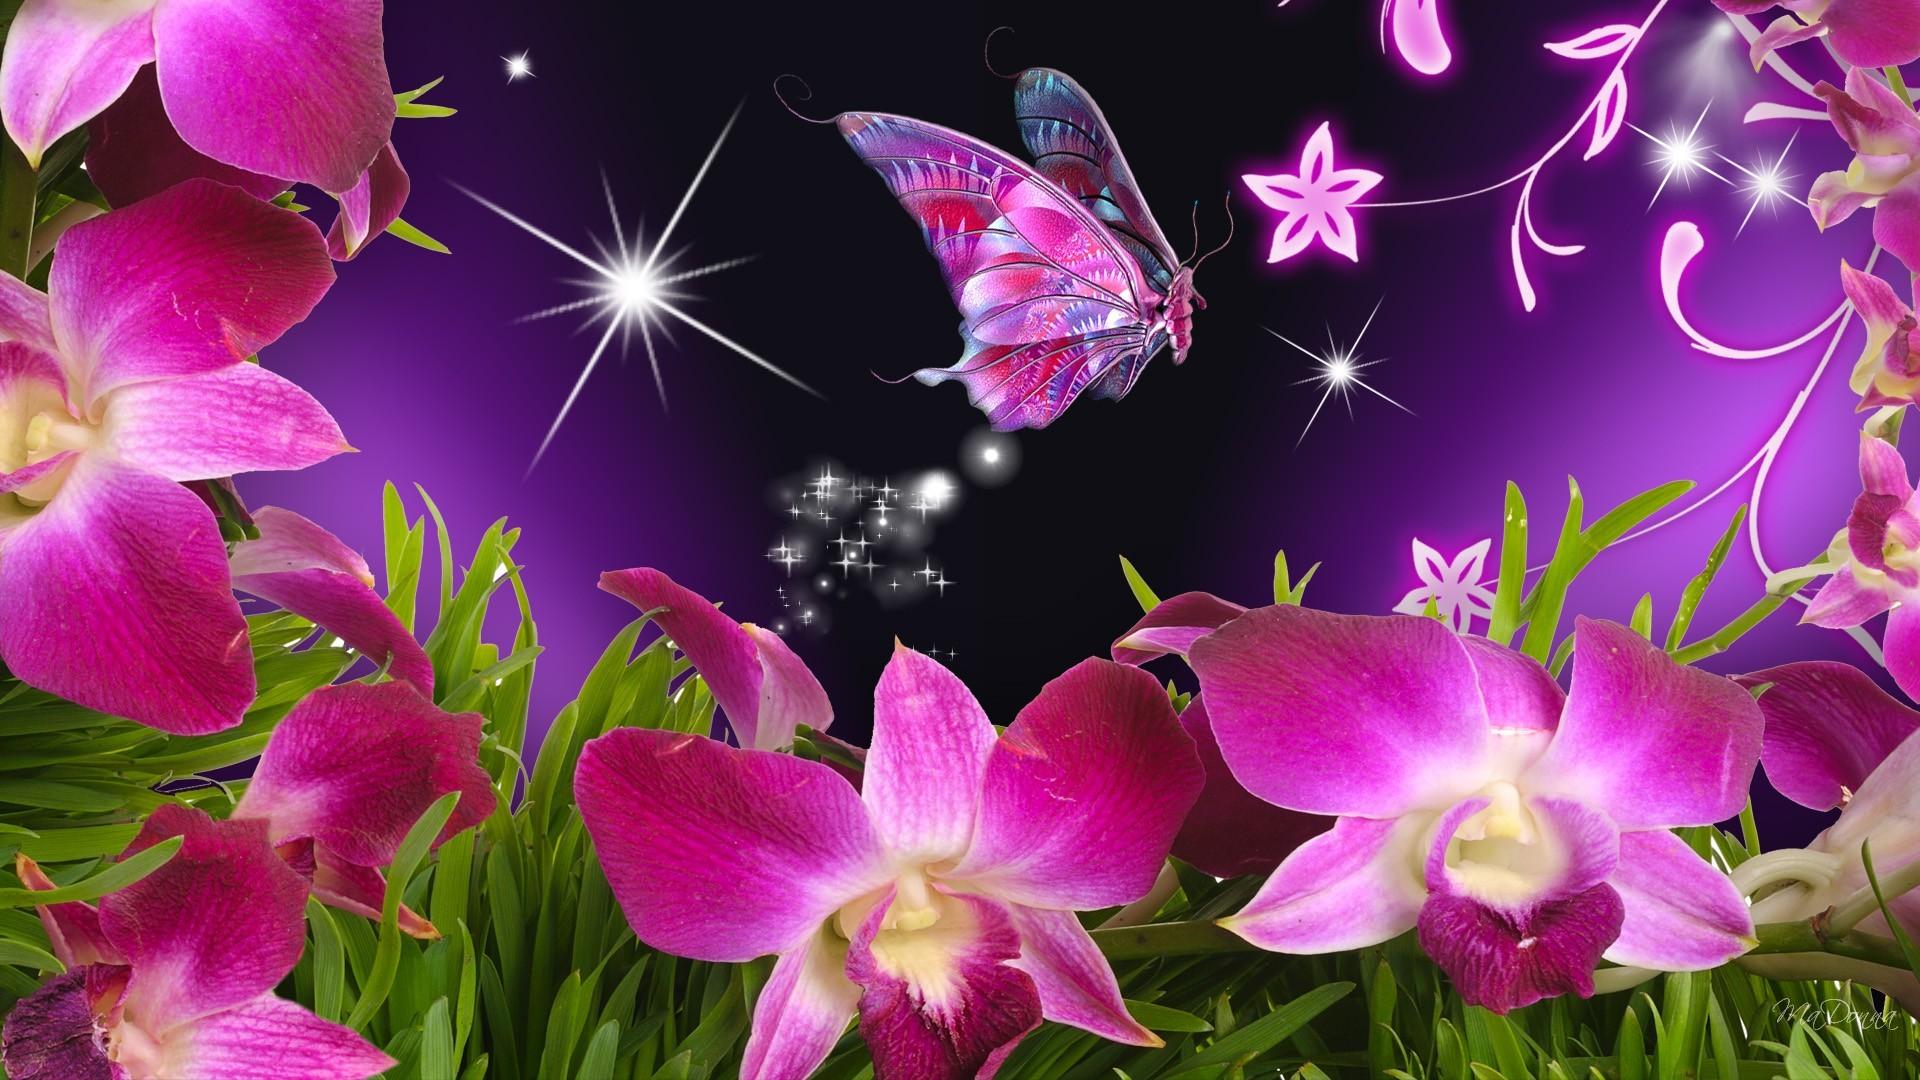 Beautiful butterflies and flowers wallpapers 56 images 1920x1080 flowers for beautiful flowers and butterflies wallpapers wallpapersthemesect mightylinksfo